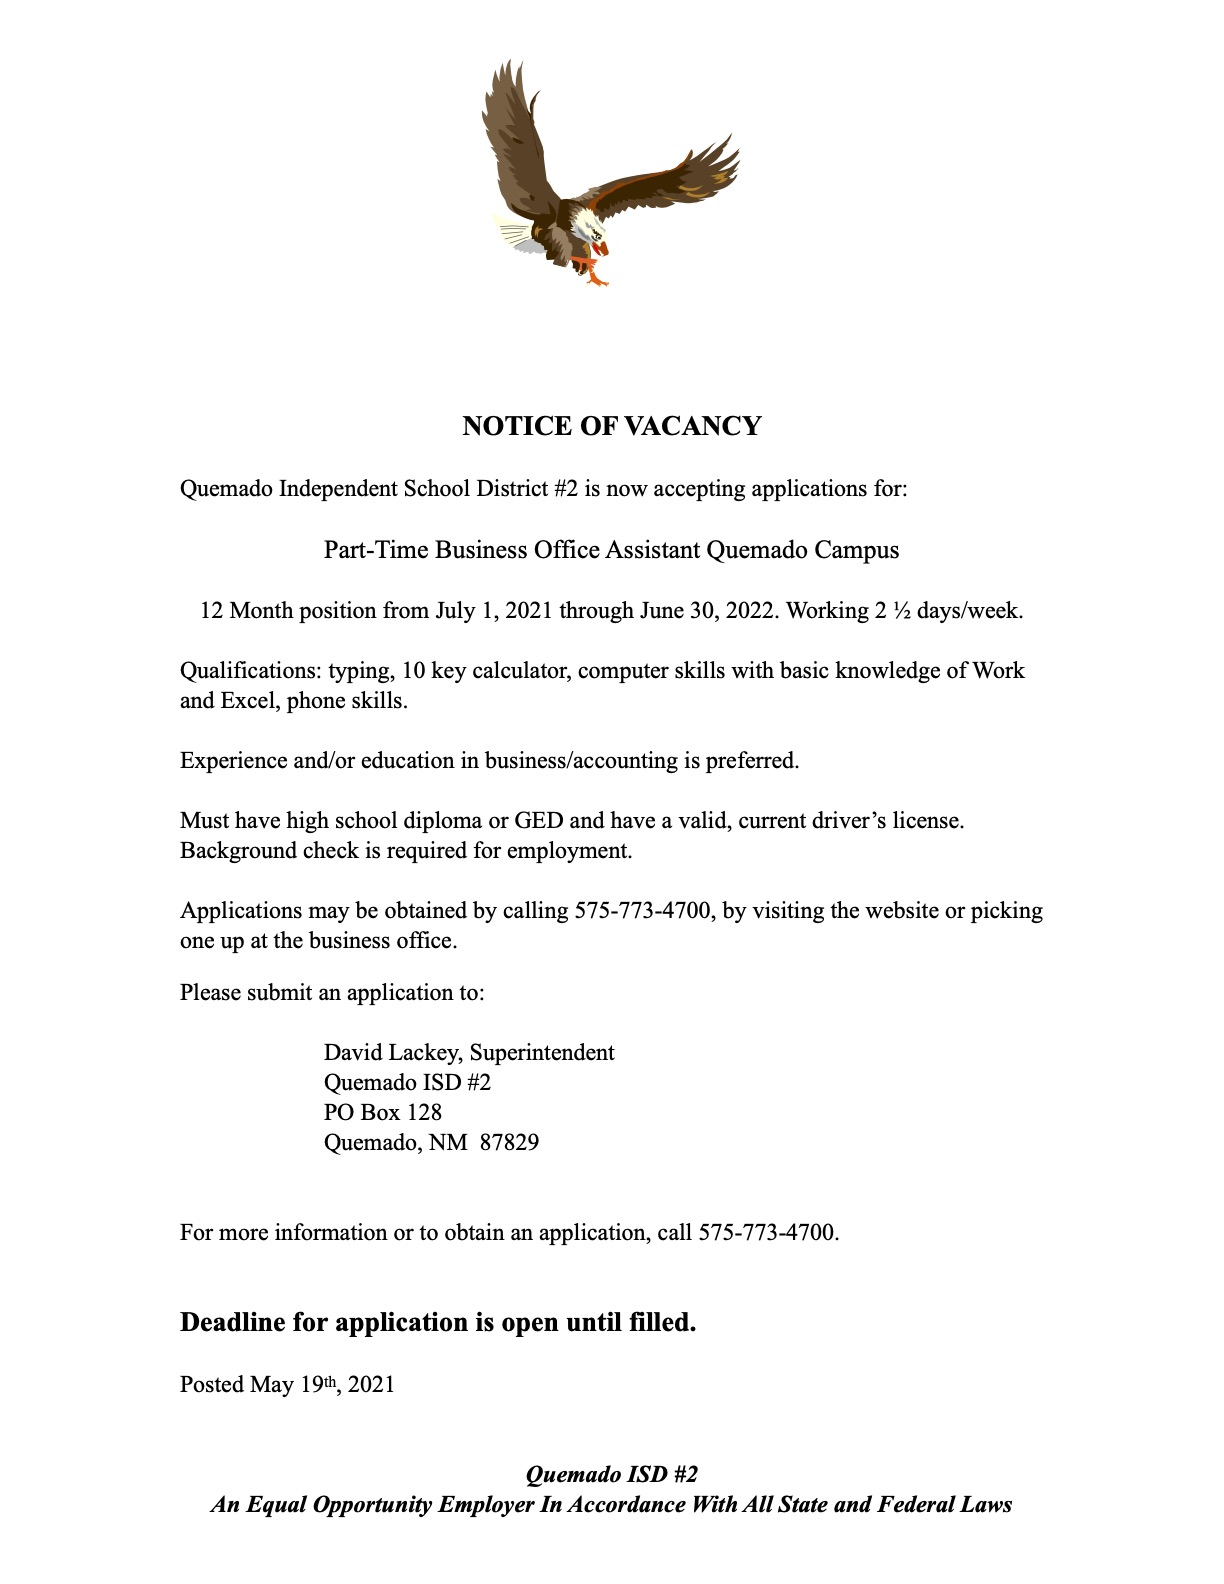 Business office vacancy